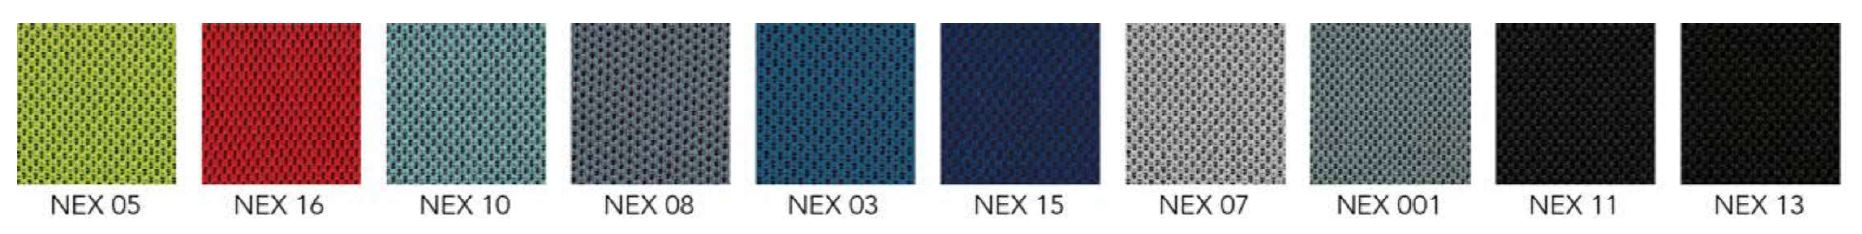 NEW LOGIC 220 Nexus (Camira - grp3)